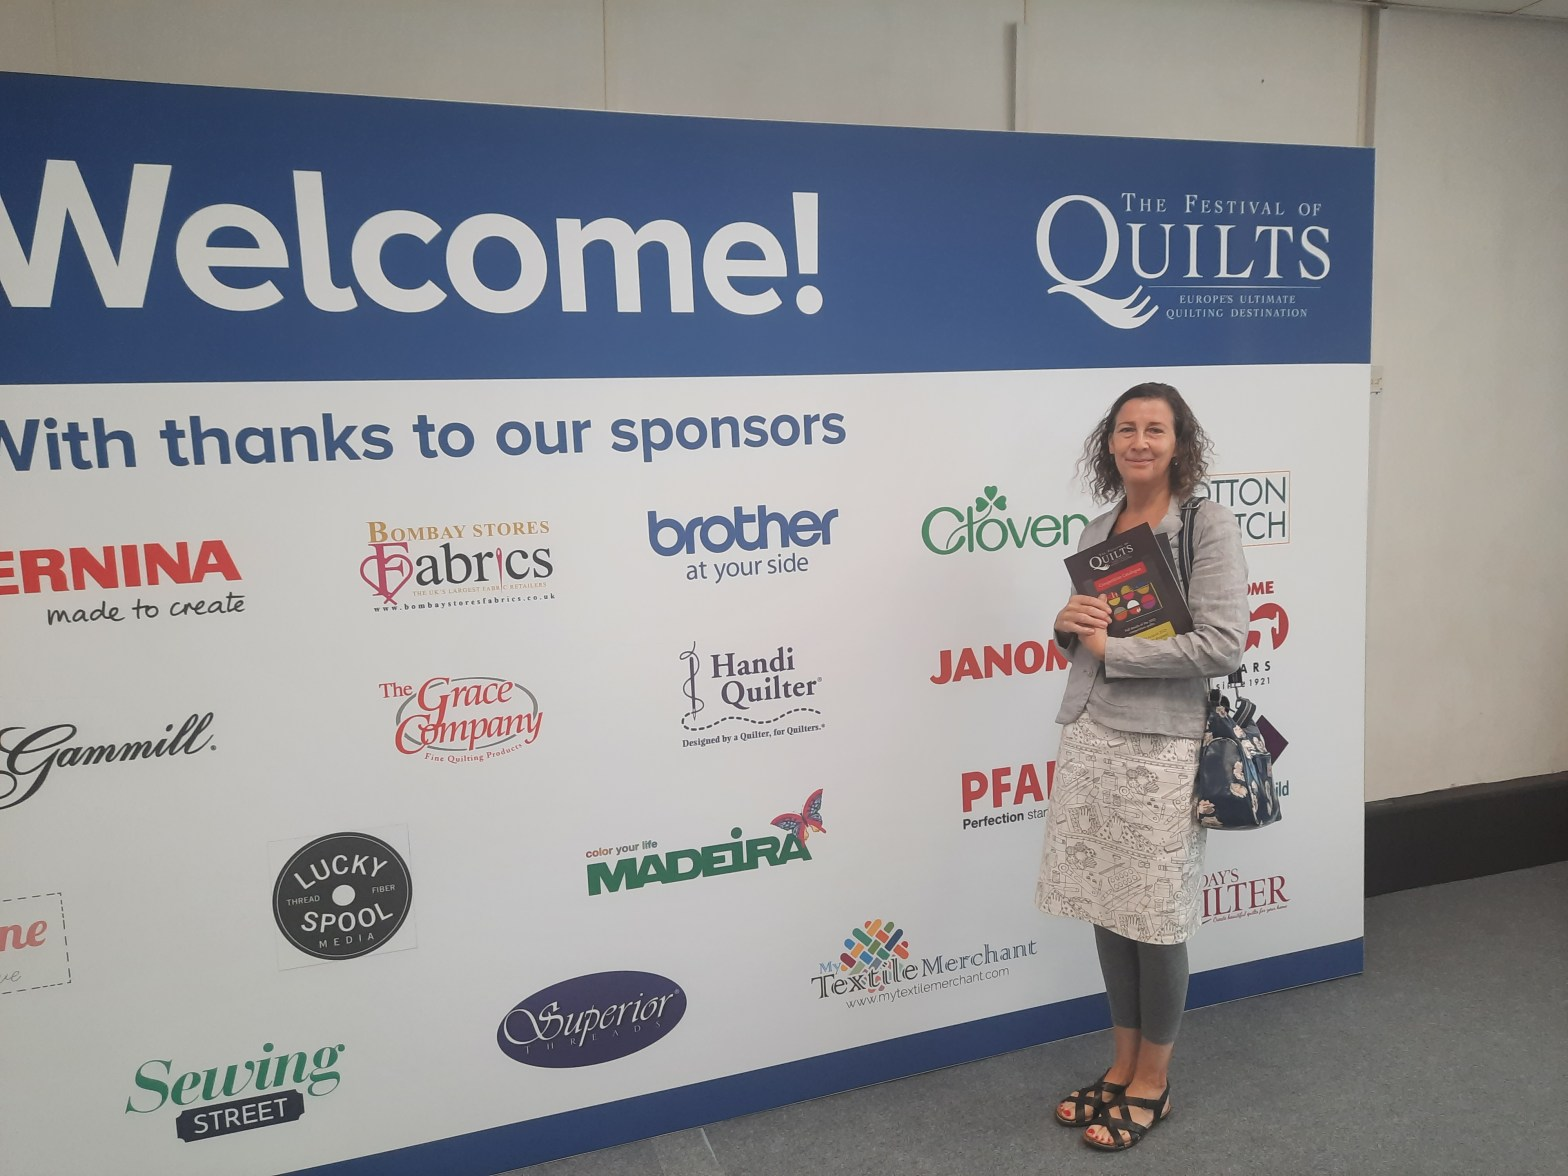 Amanda Jane Ogden at the entrance to the Festival of Quilts 2021